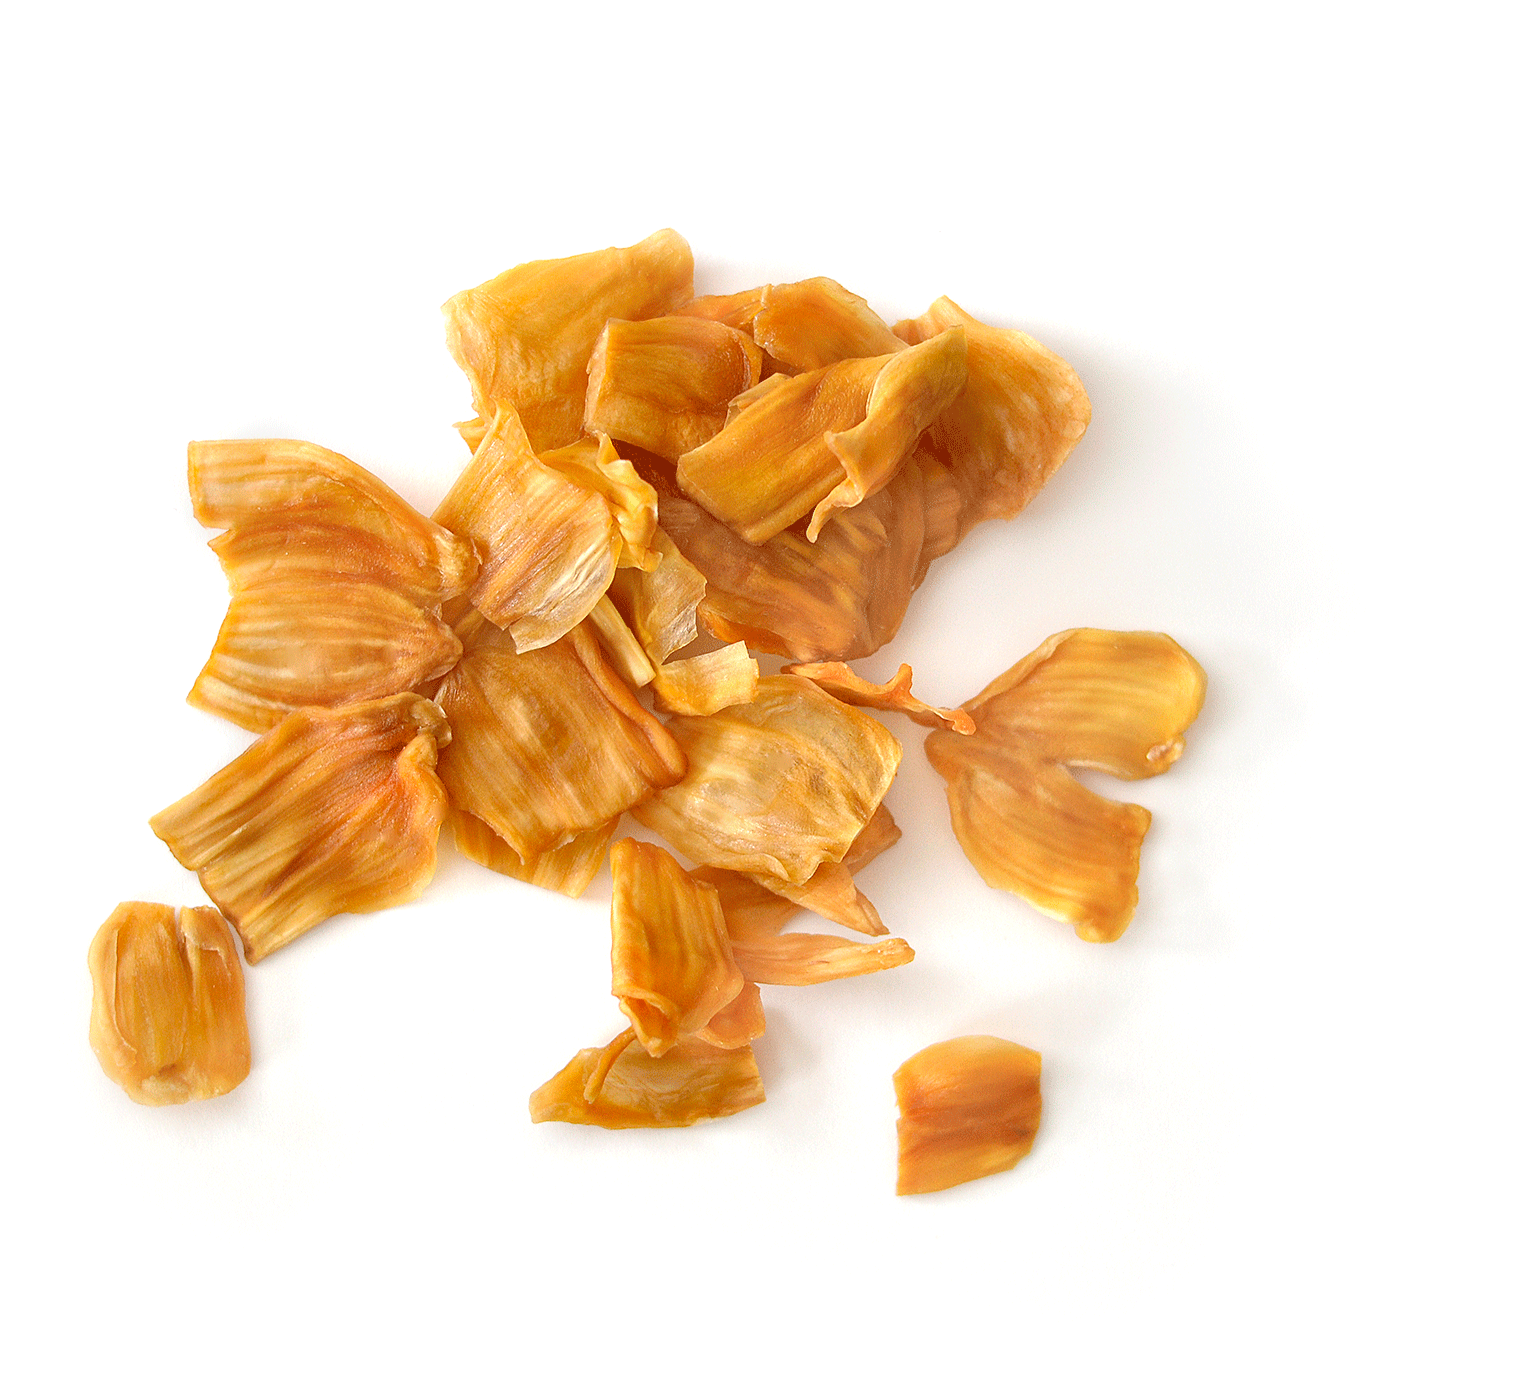 Healthy dried jackfruit pieces clumped together on a white background